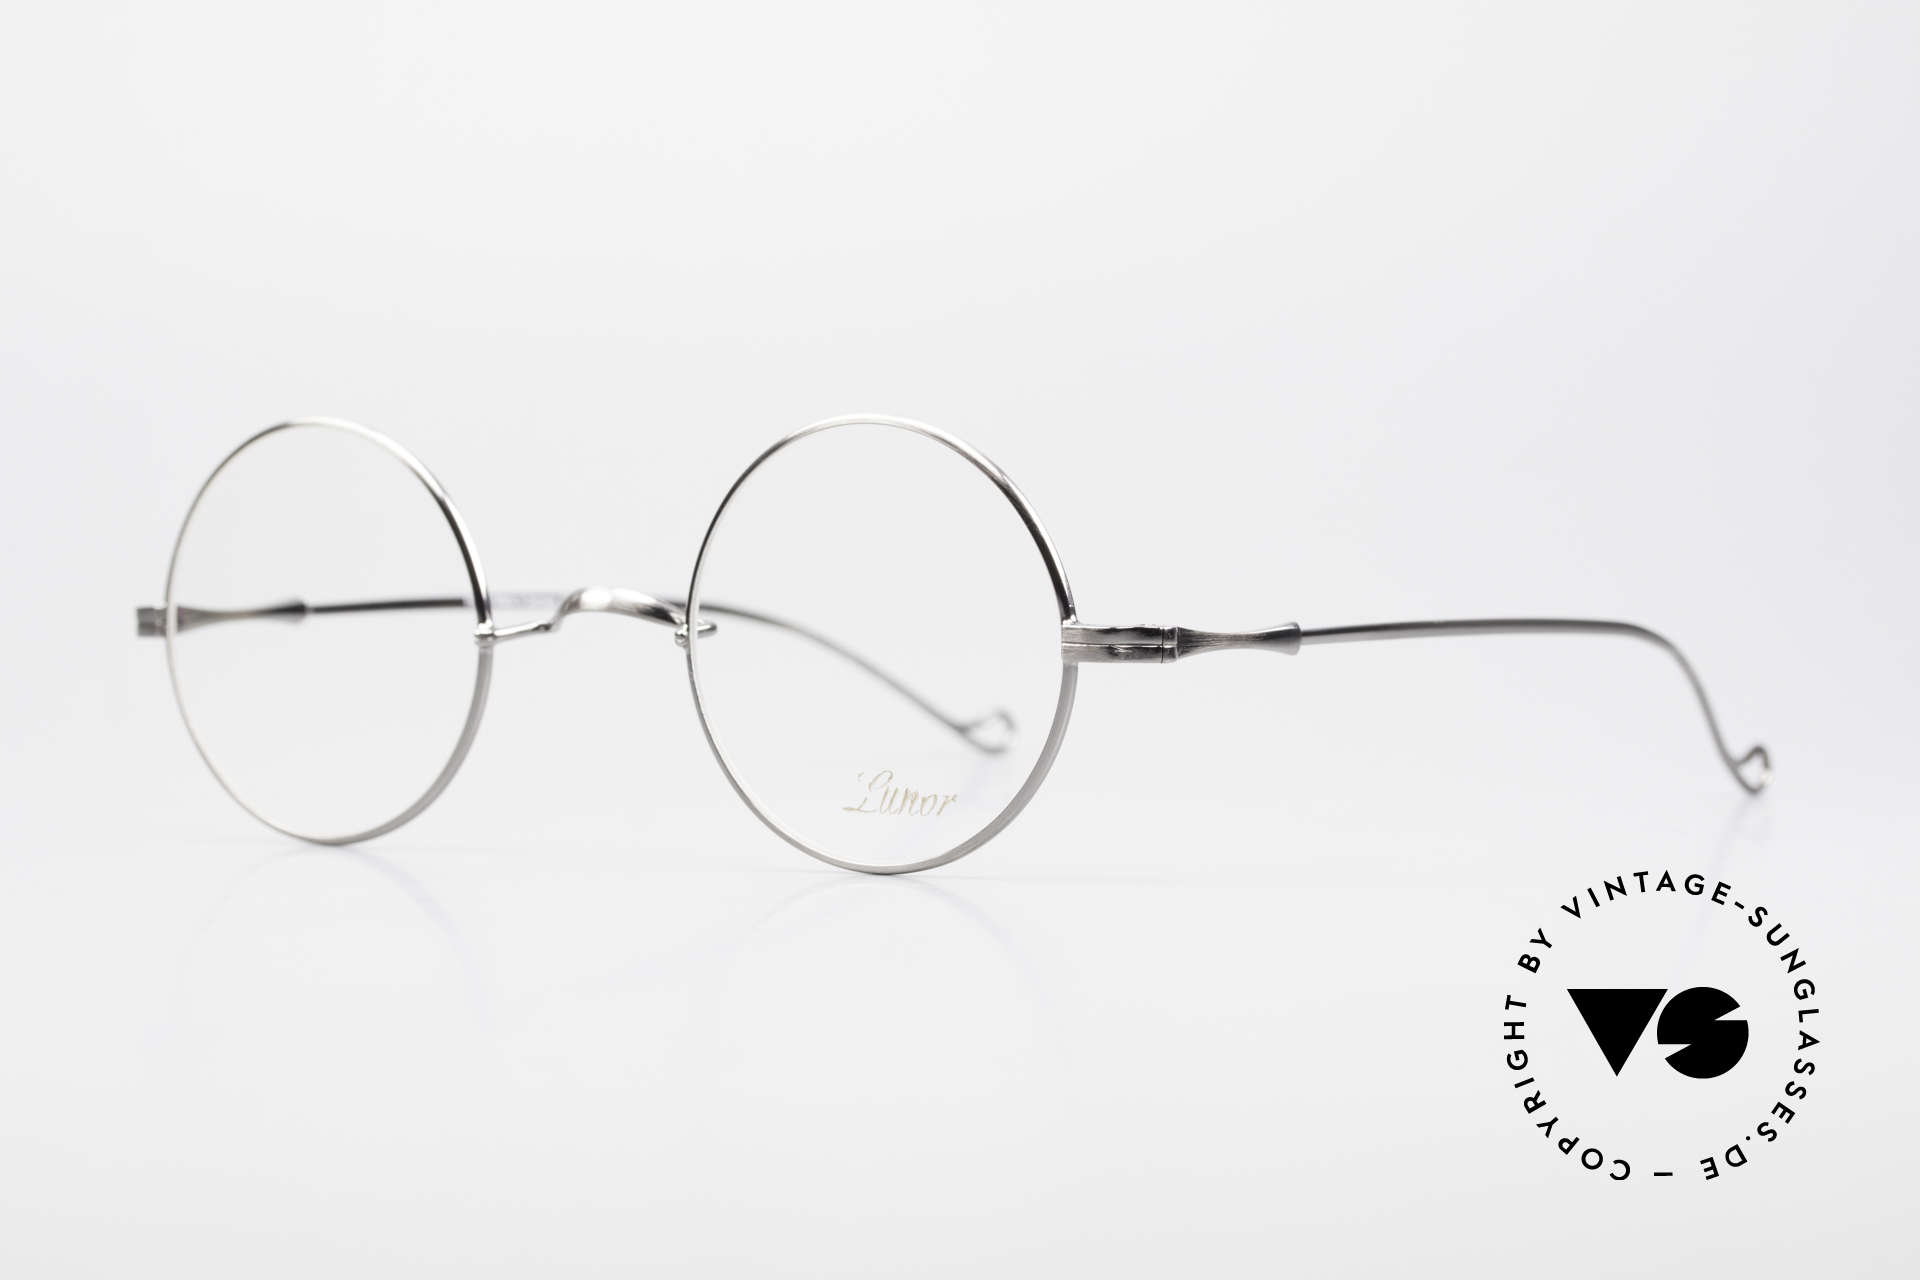 Lunor II 23 Round Frame Antique Silver, circular frame design in M size 42mm with a W bridge, Made for Men and Women